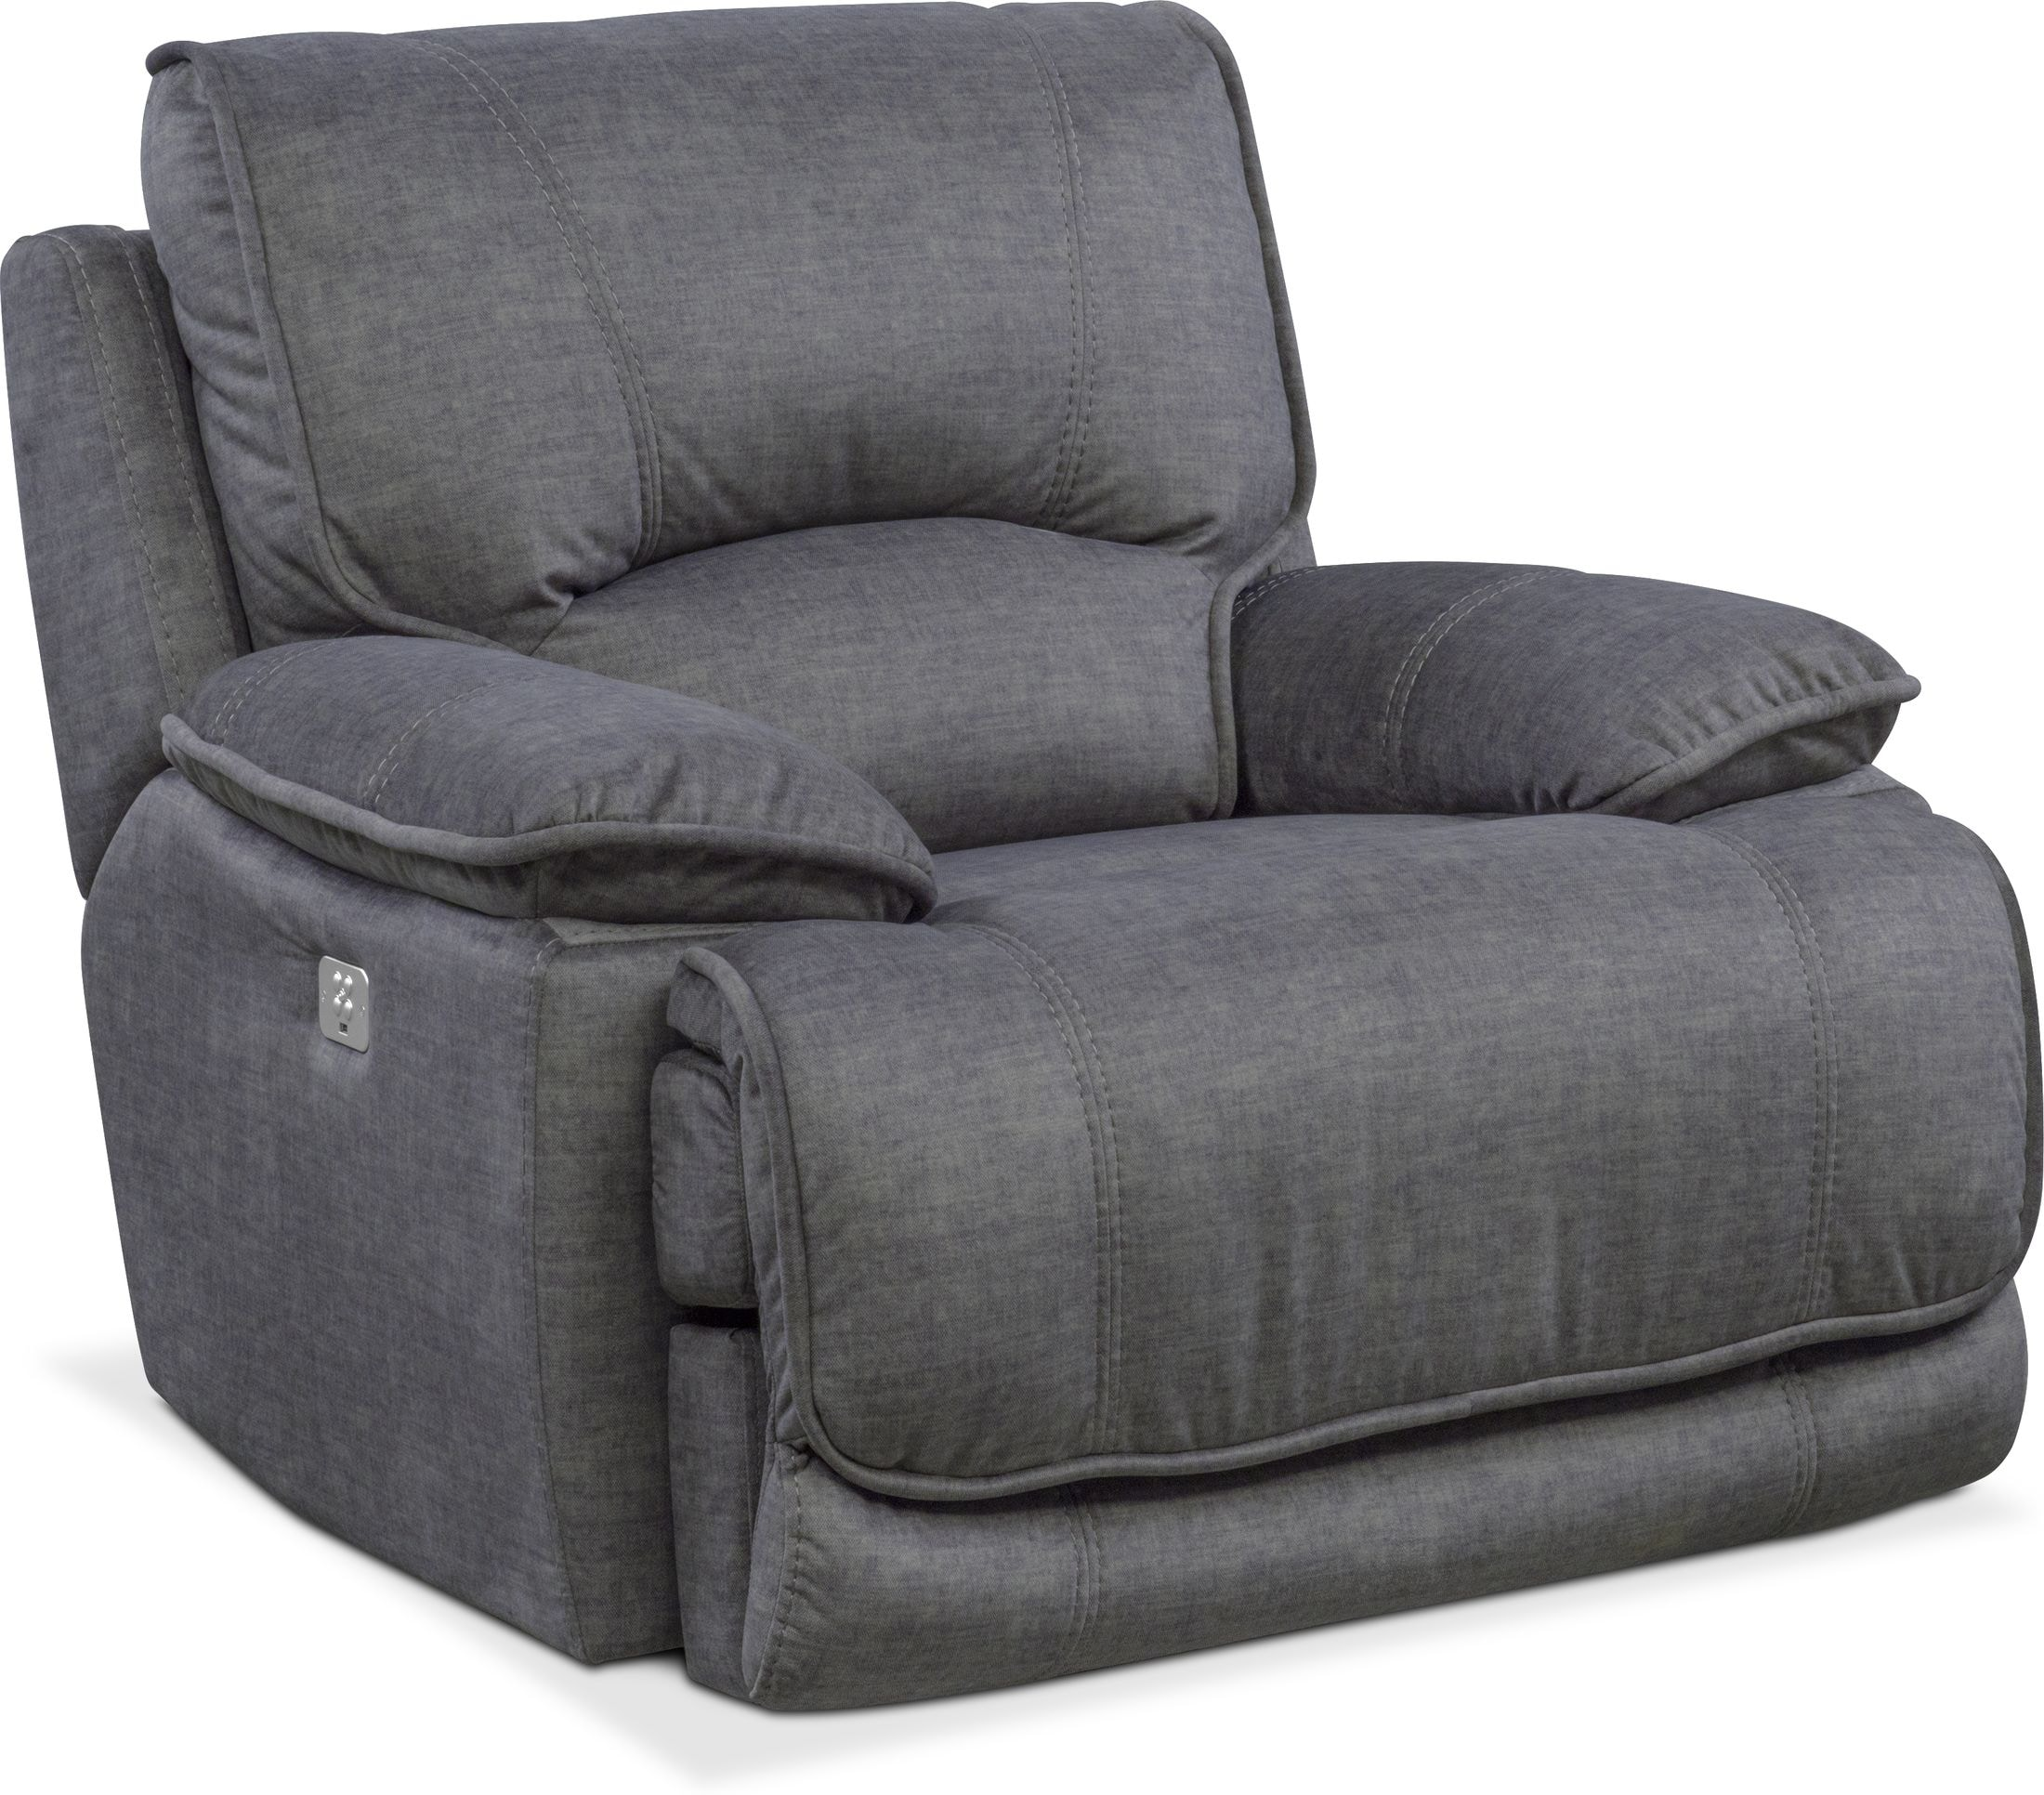 Living Room Furniture - Mario Dual-Power Recliner